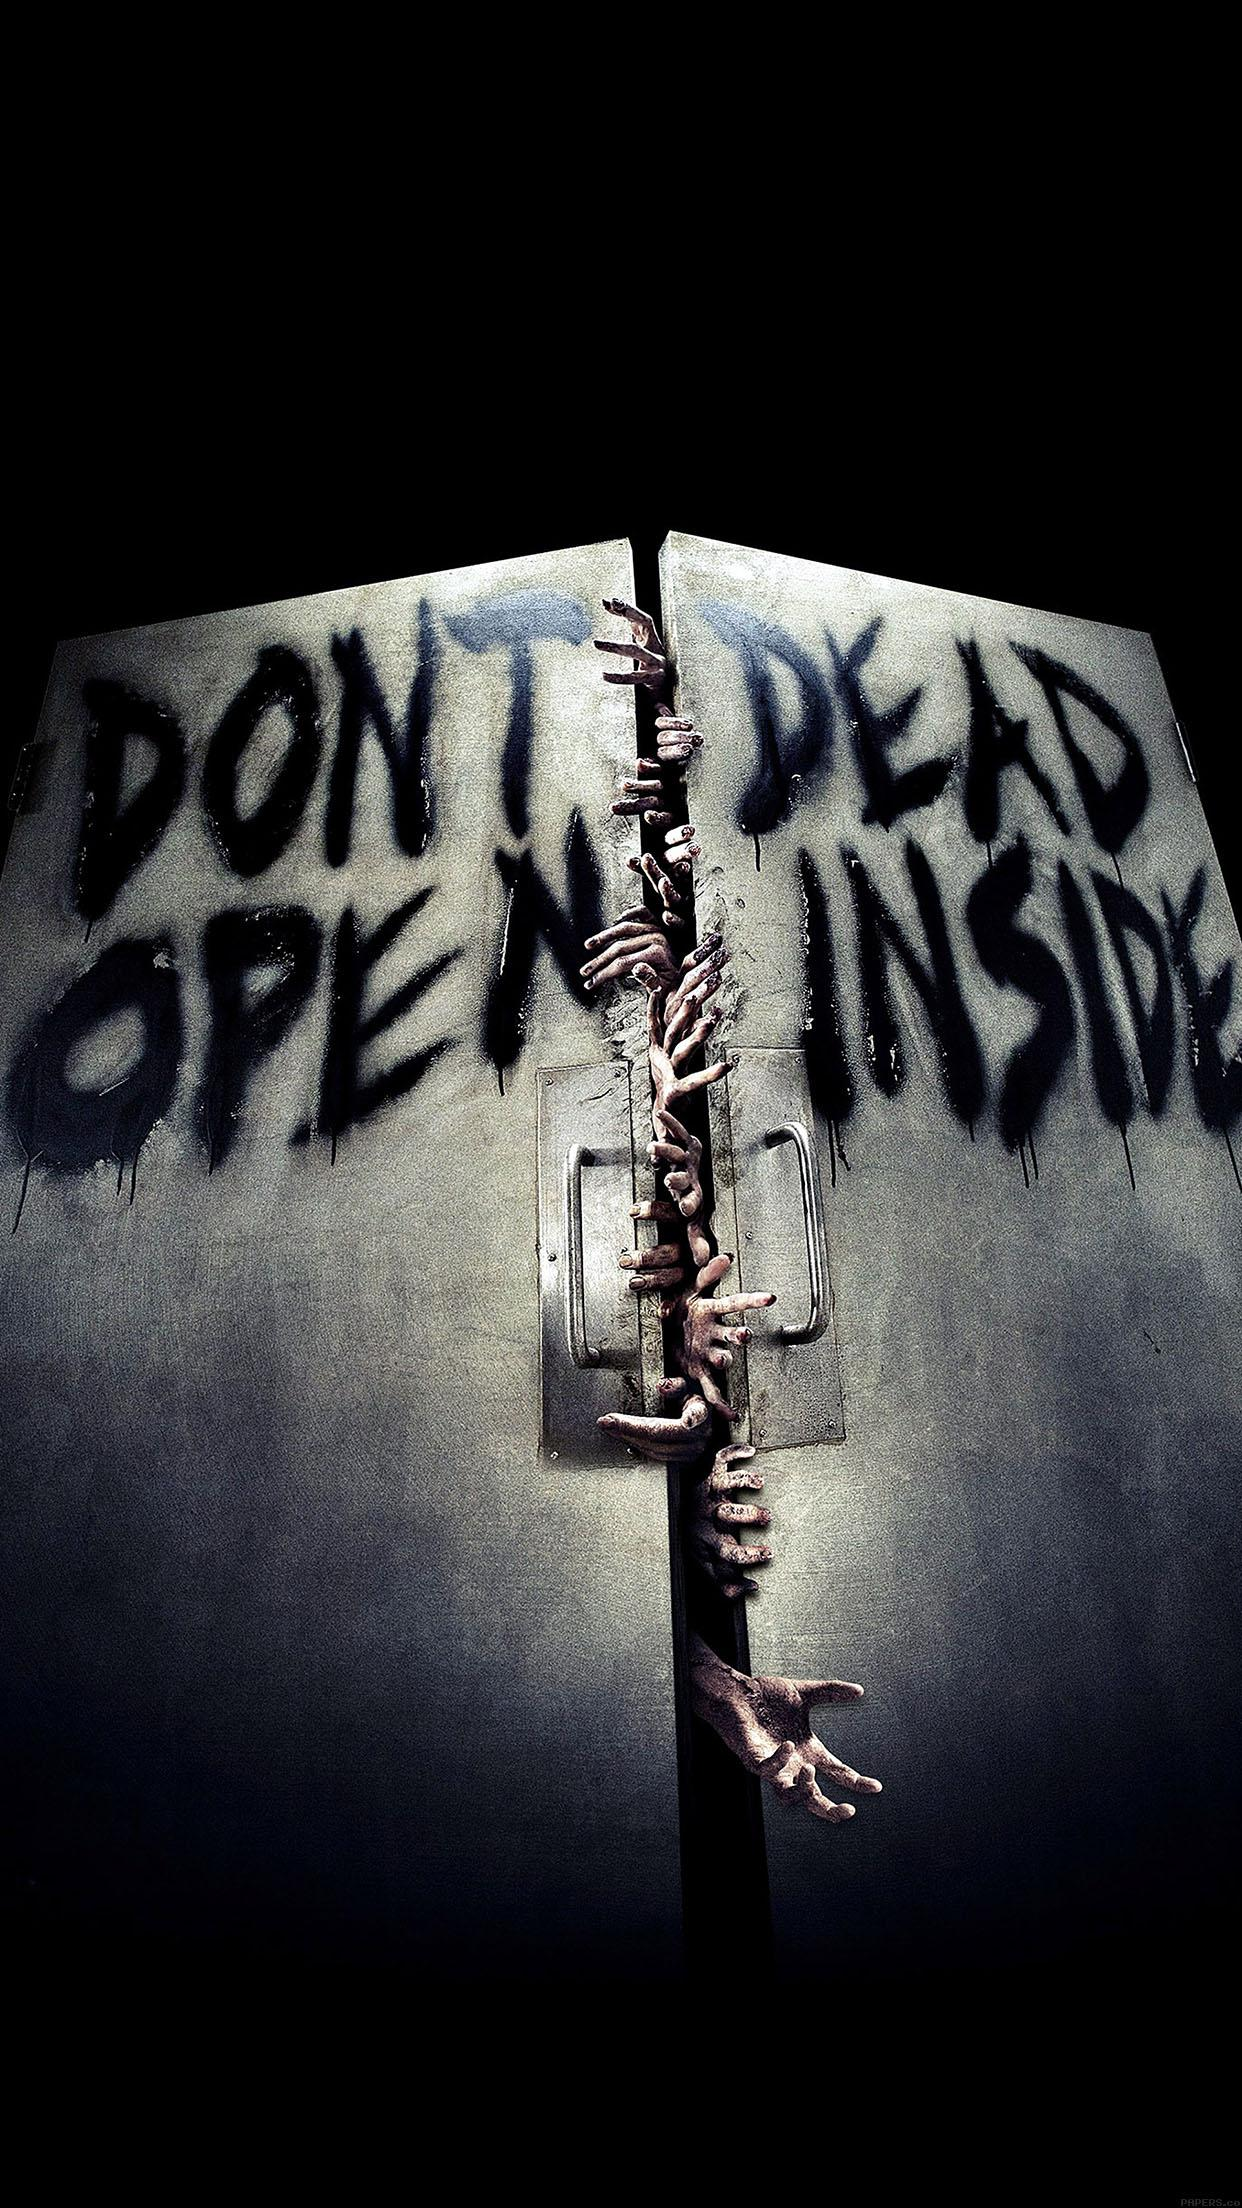 Walking Dead Iphone Wallpapers Wallpaper Cave